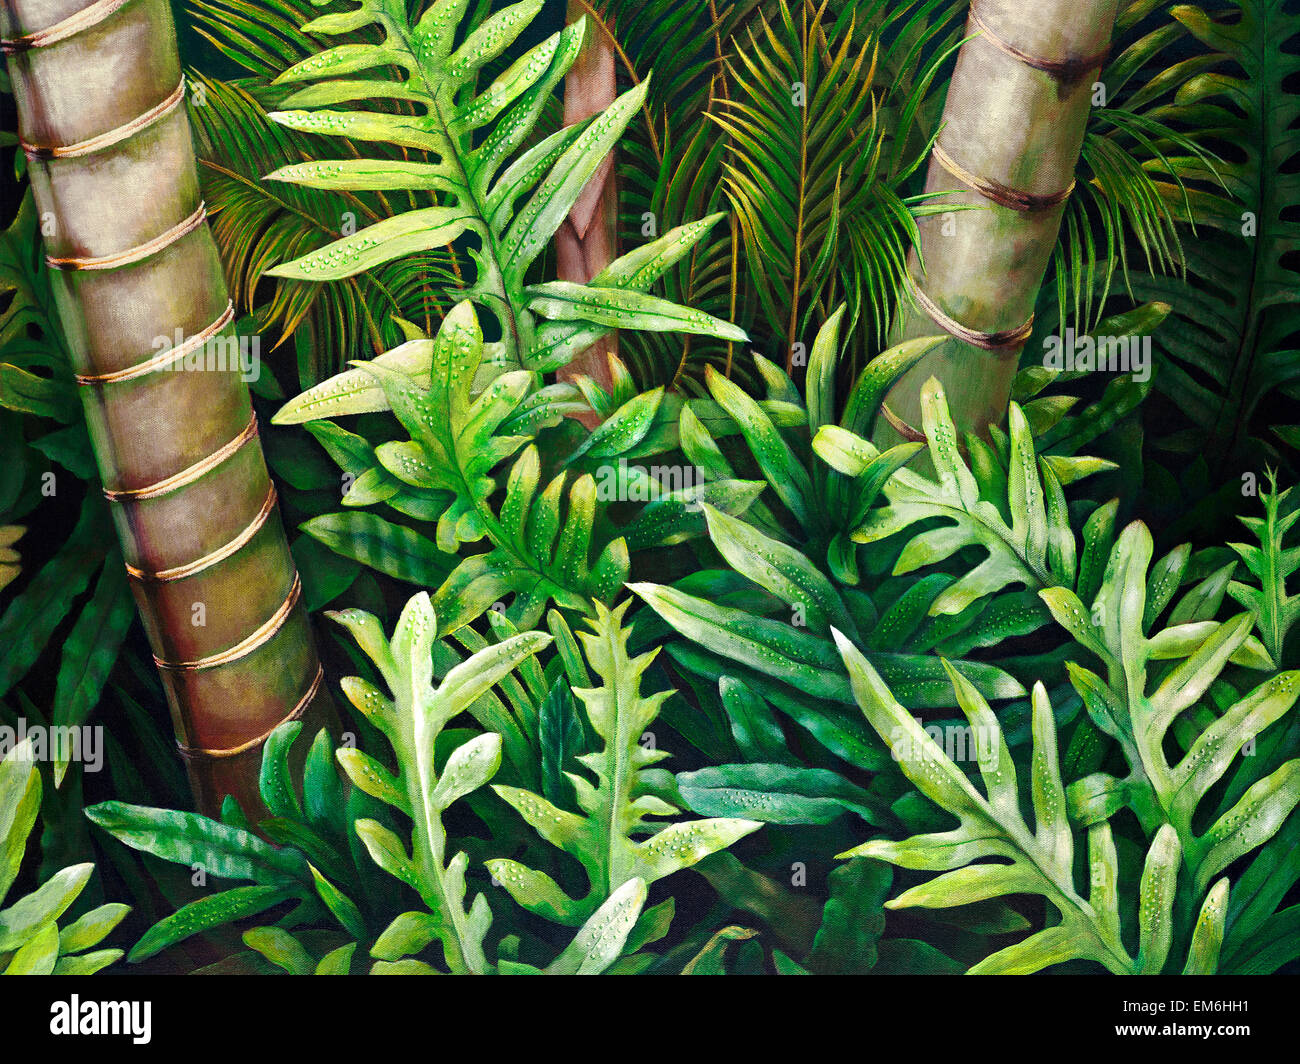 Well known Nahele, Ferns, Palms And Tree Trunks (Acrylic Painting Stock Photo  BQ19